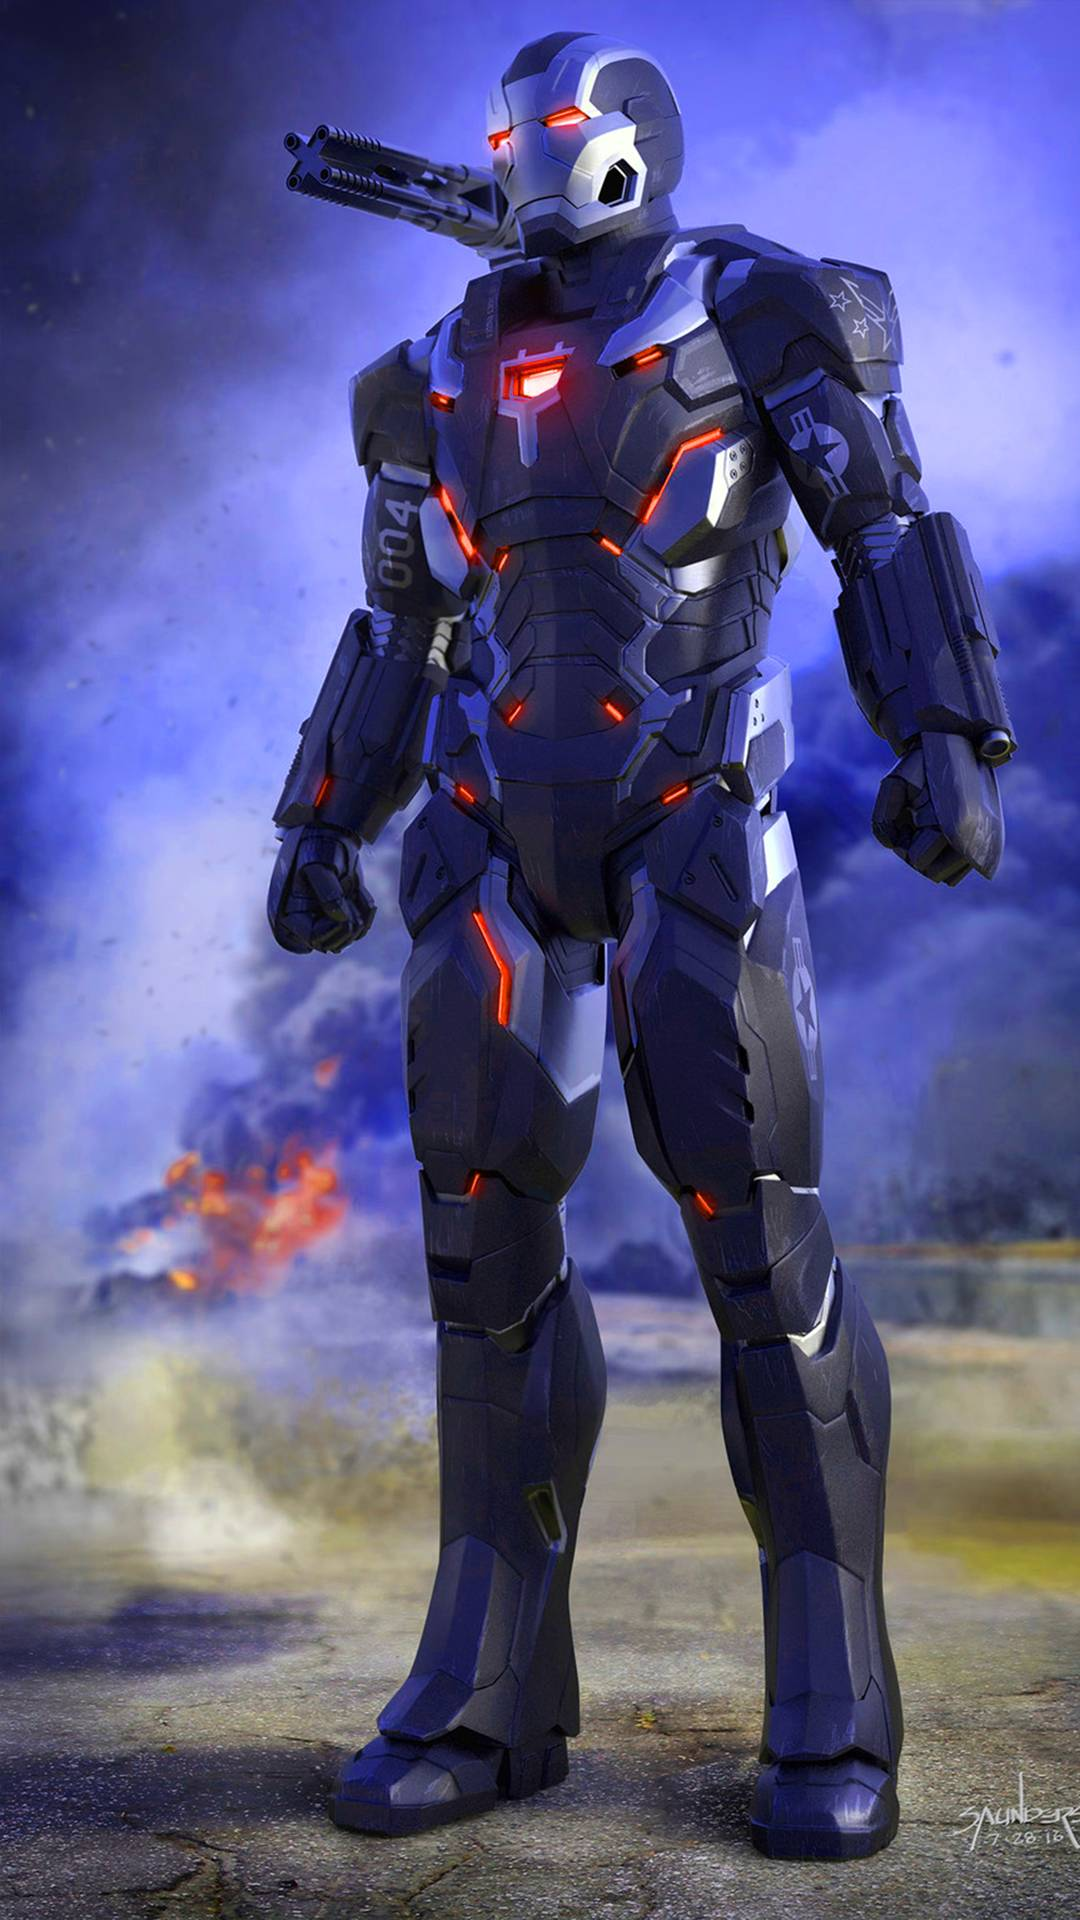 War Machine Endgame Armor iPhone Wallpaper